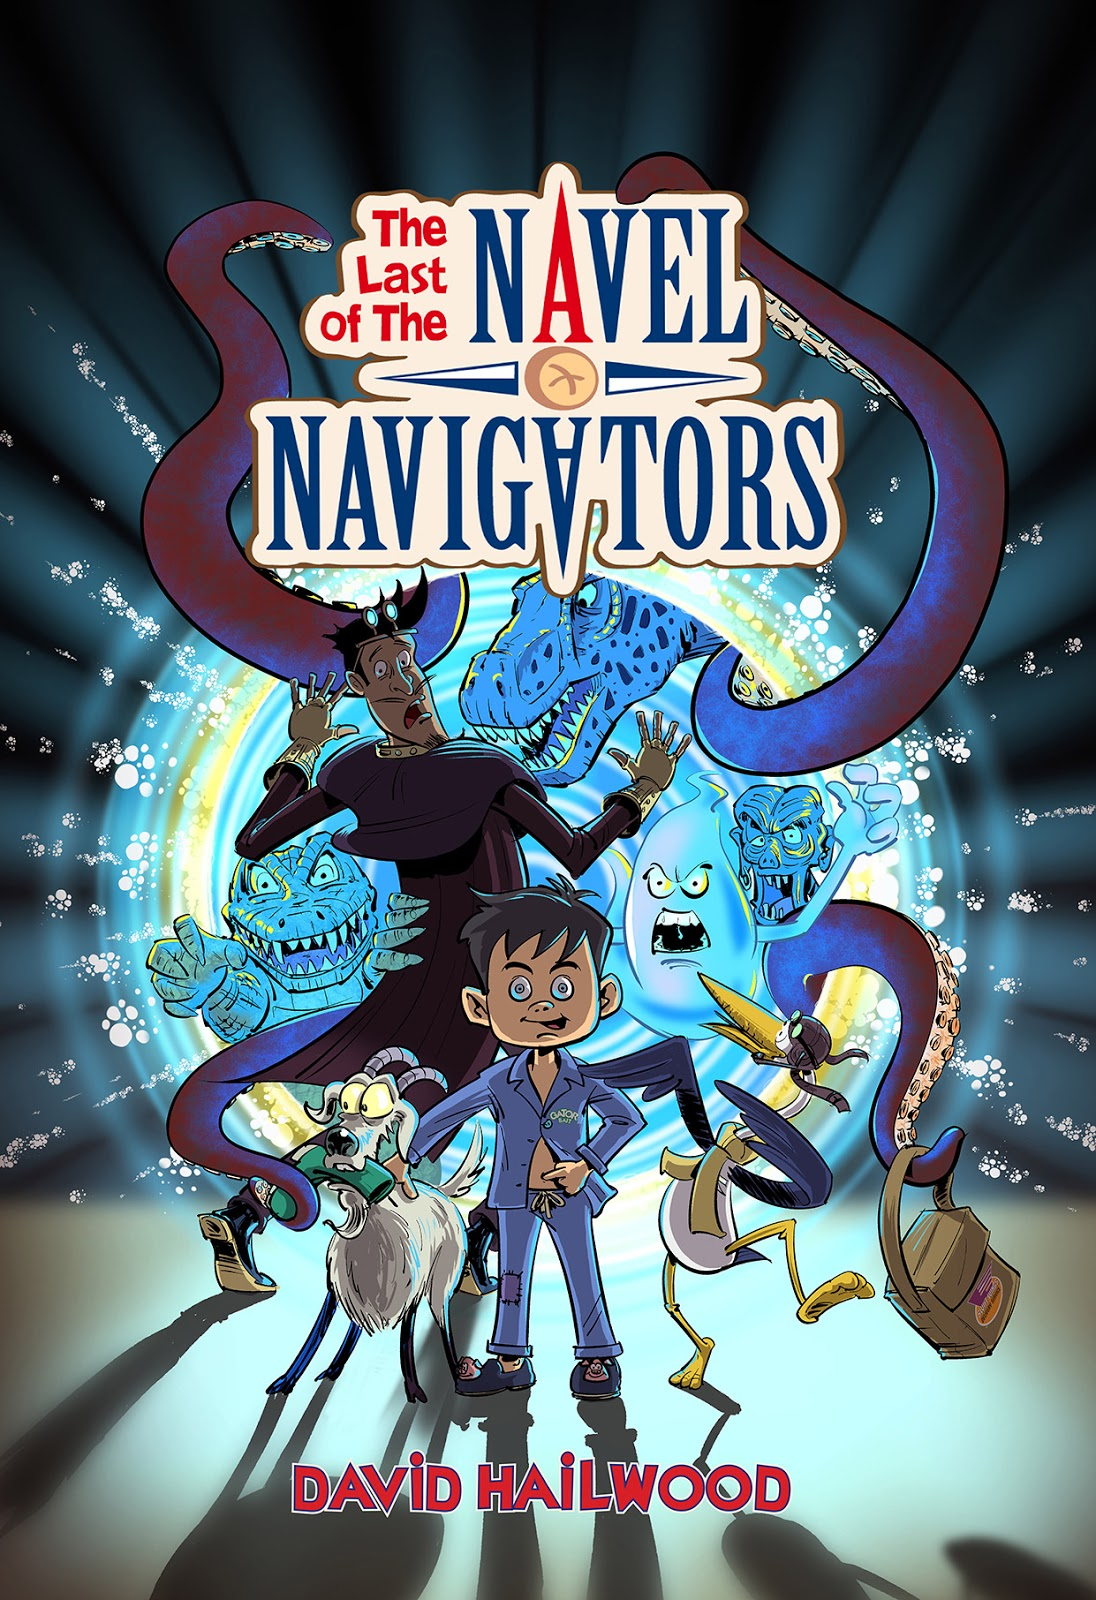 Buy The Navel Navigators Novel